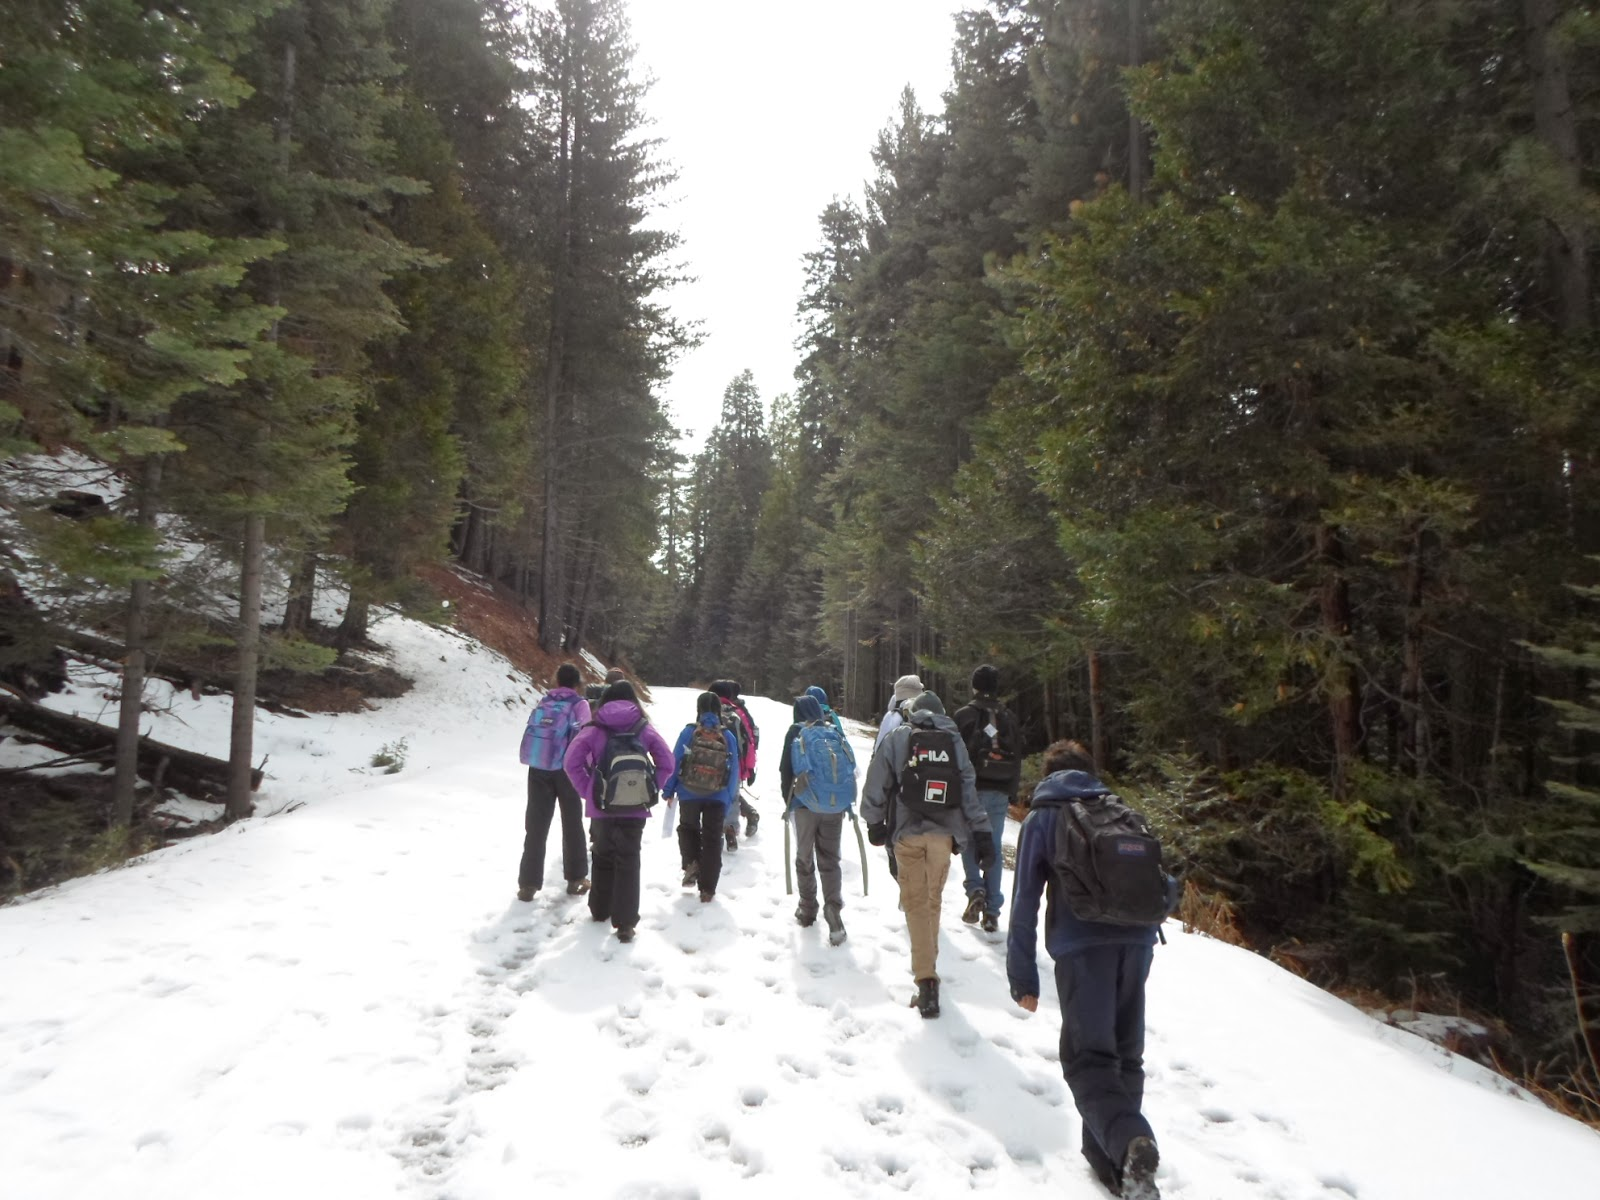 Walk with Sandra Yosemite National Park An Educational Visit